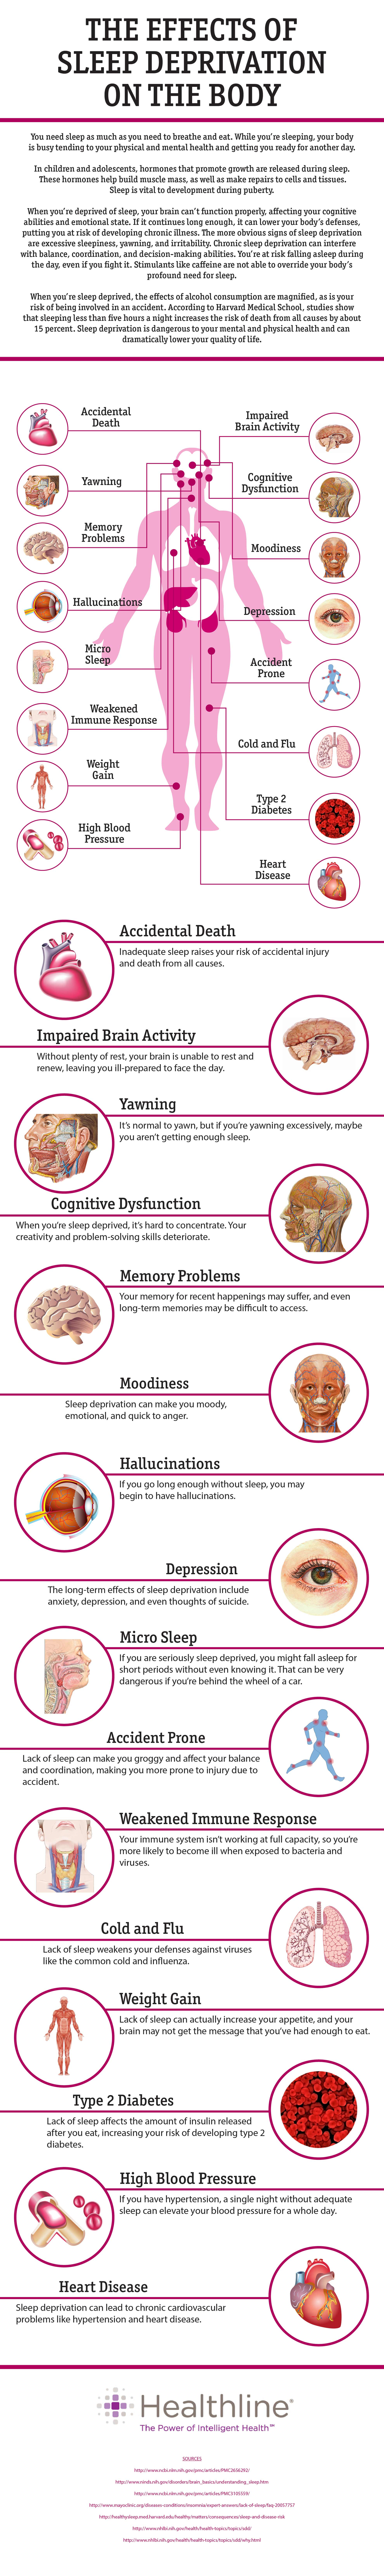 Effects of Sleep Deprivation on the Body